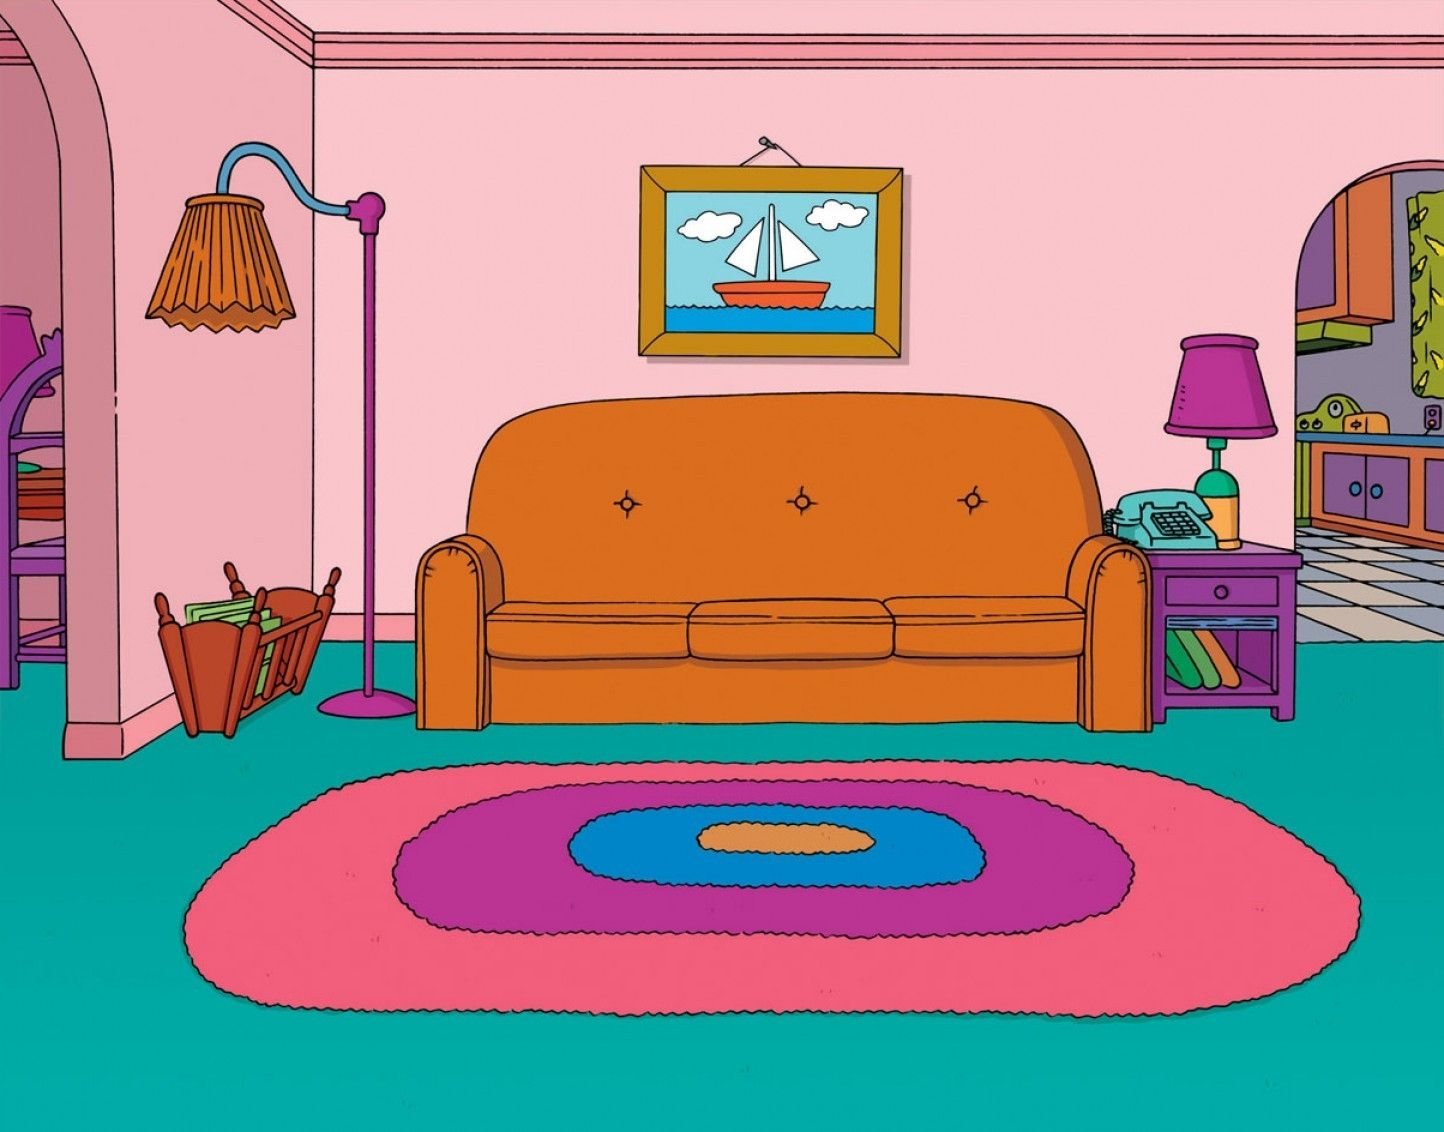 Cool Living Room Clipart Image Album On Imgur In Living Room Clipart 33460